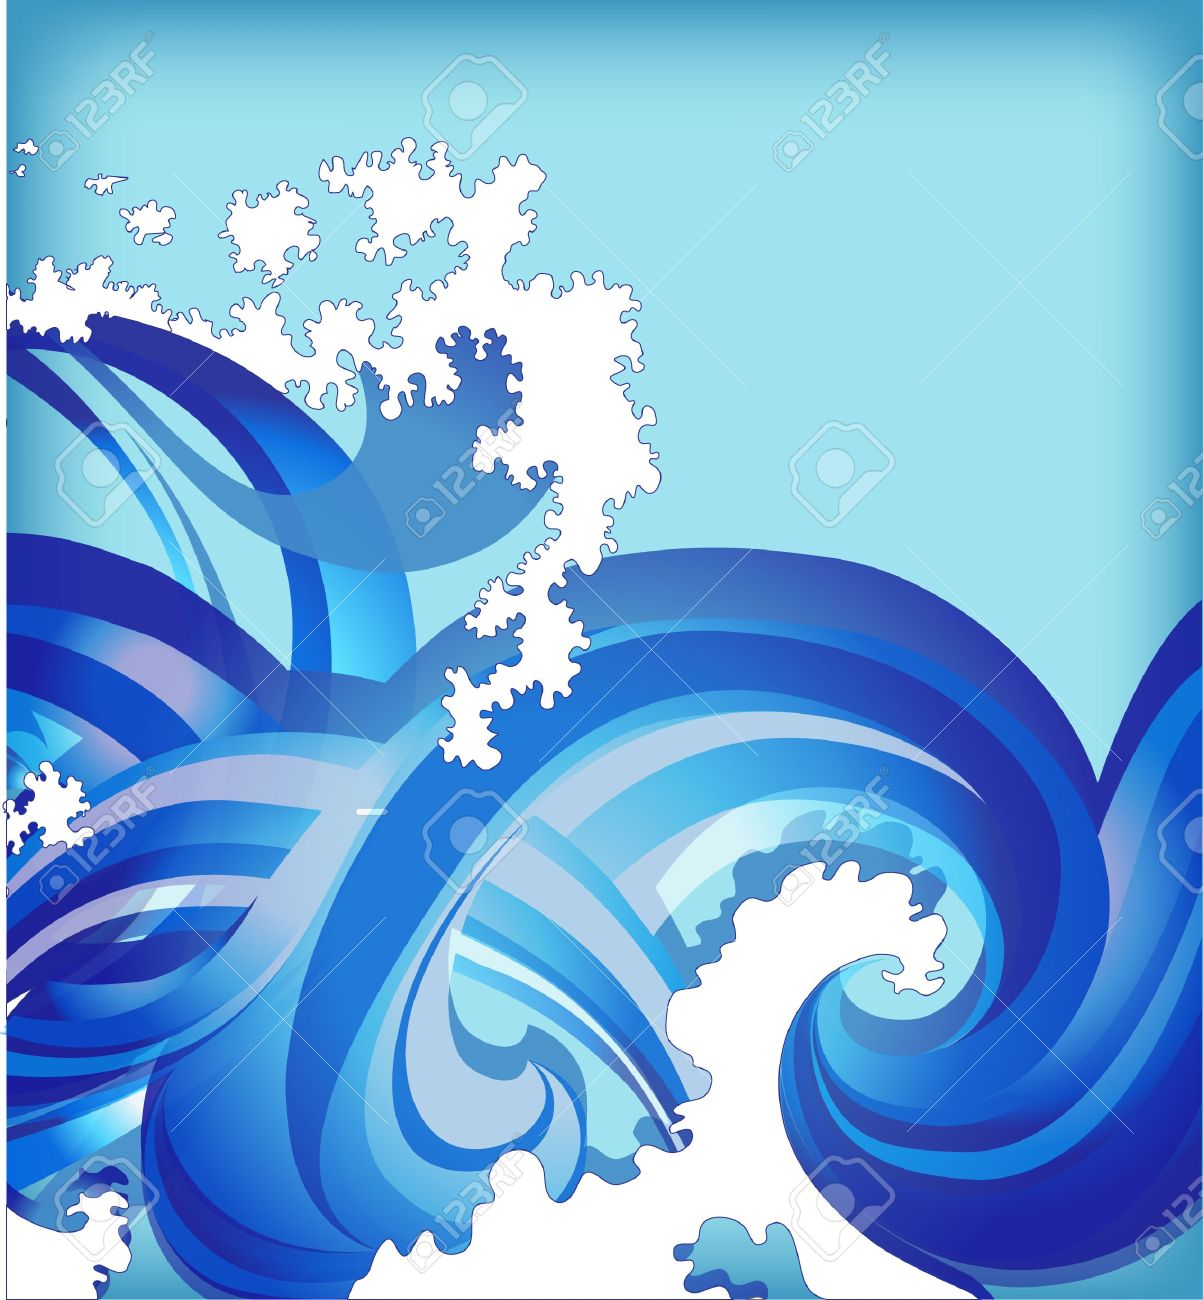 abstract background with sea waves - 11251798